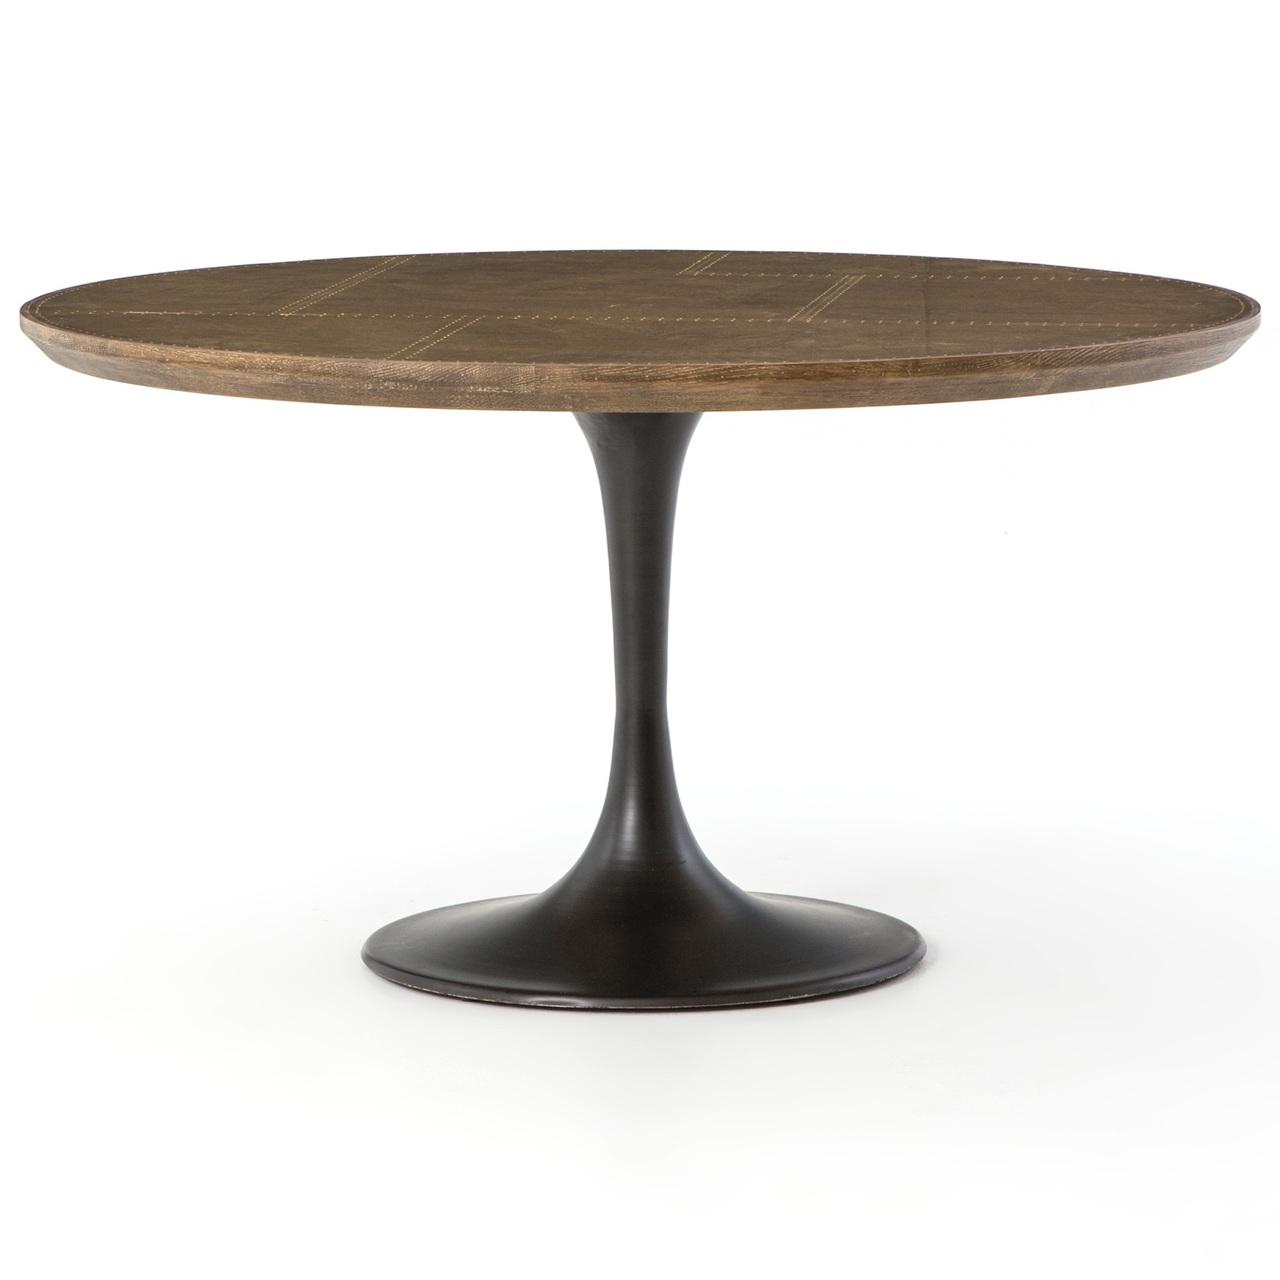 Aero Tulip Industrial Brass Clad Top Round Dining Table 55 Zin Home